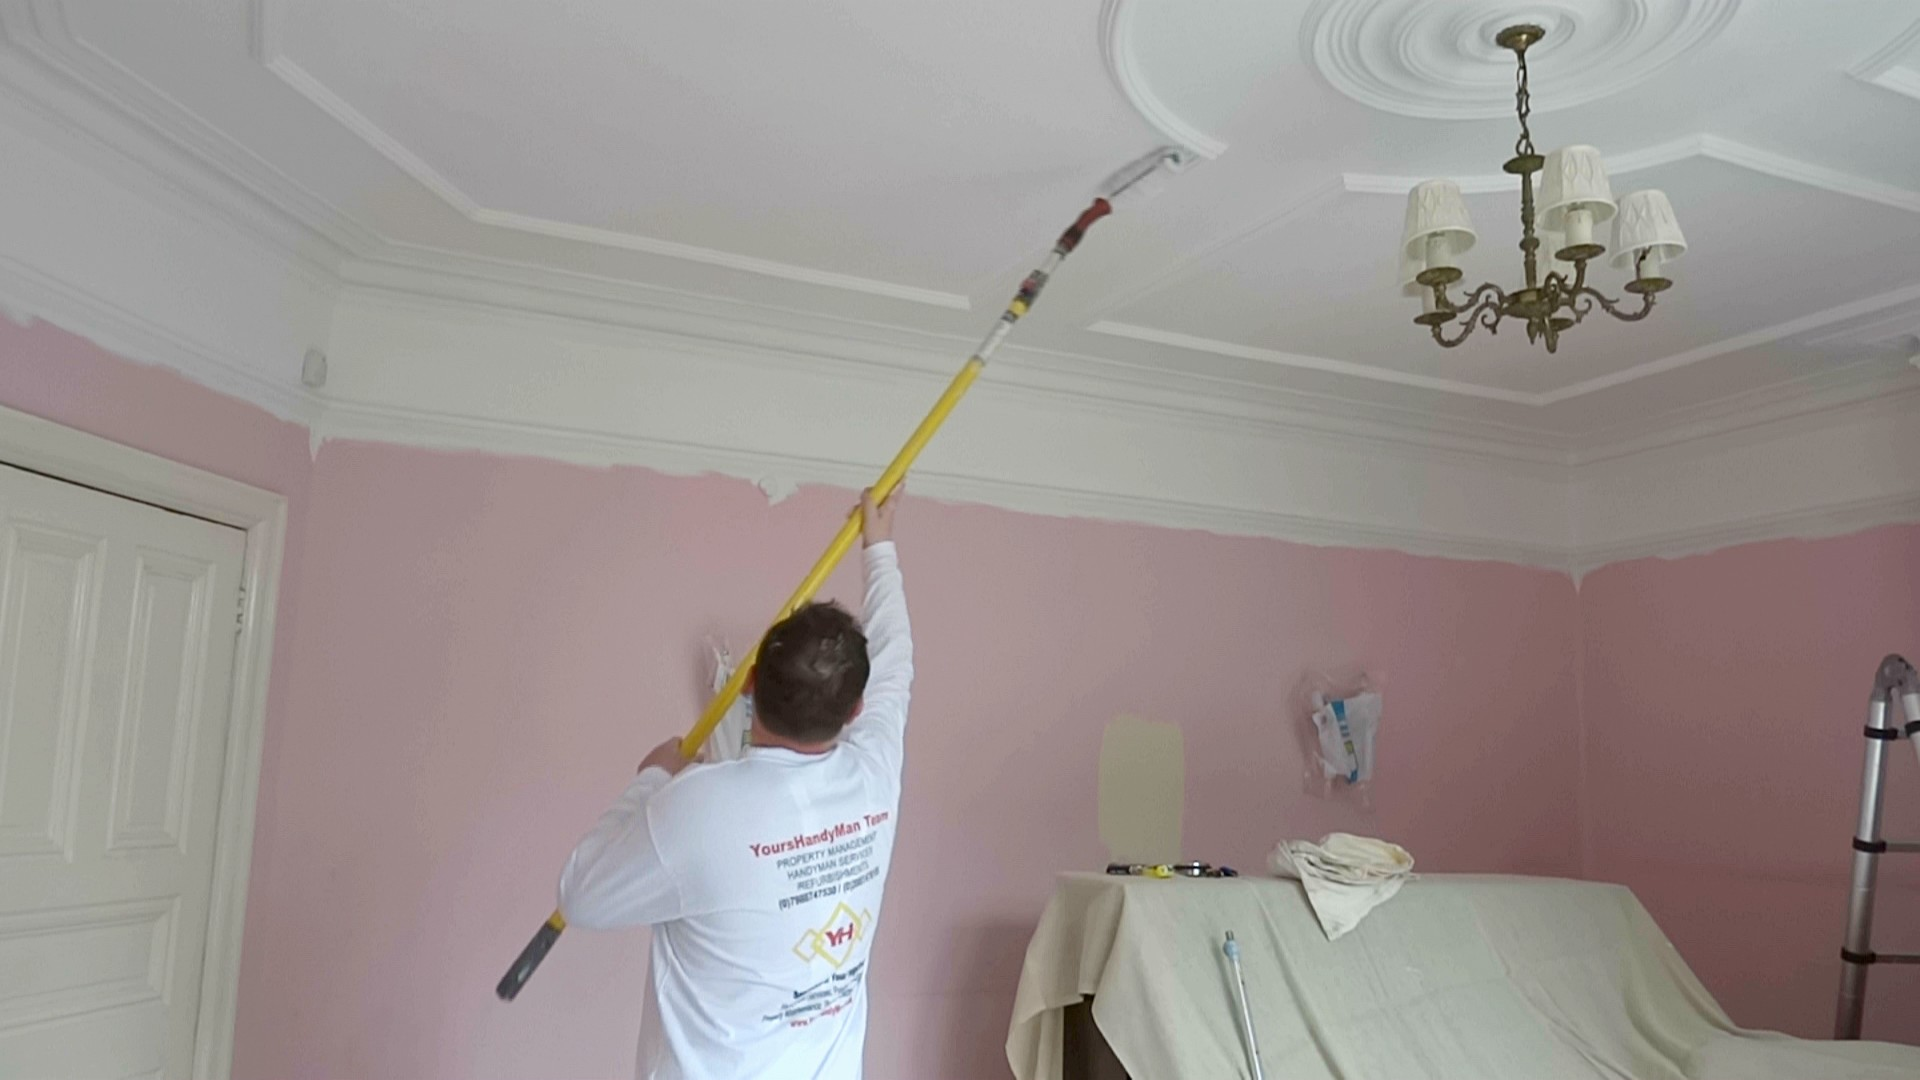 Fulham Painter - YoursHandyMan Team